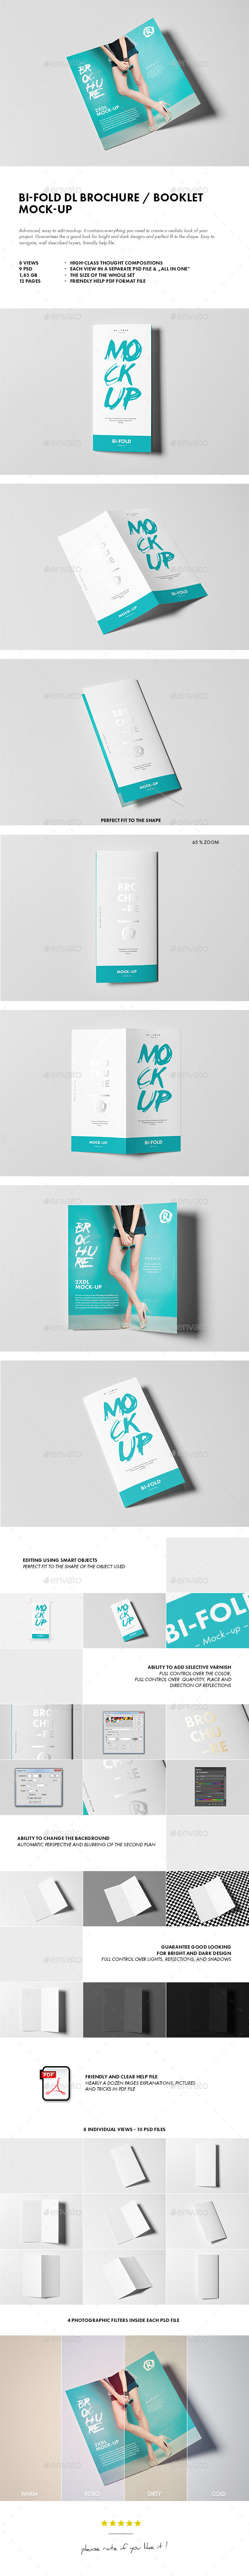 GraphicRiver Bi-Fold DL Brochure Mock-up 10450252